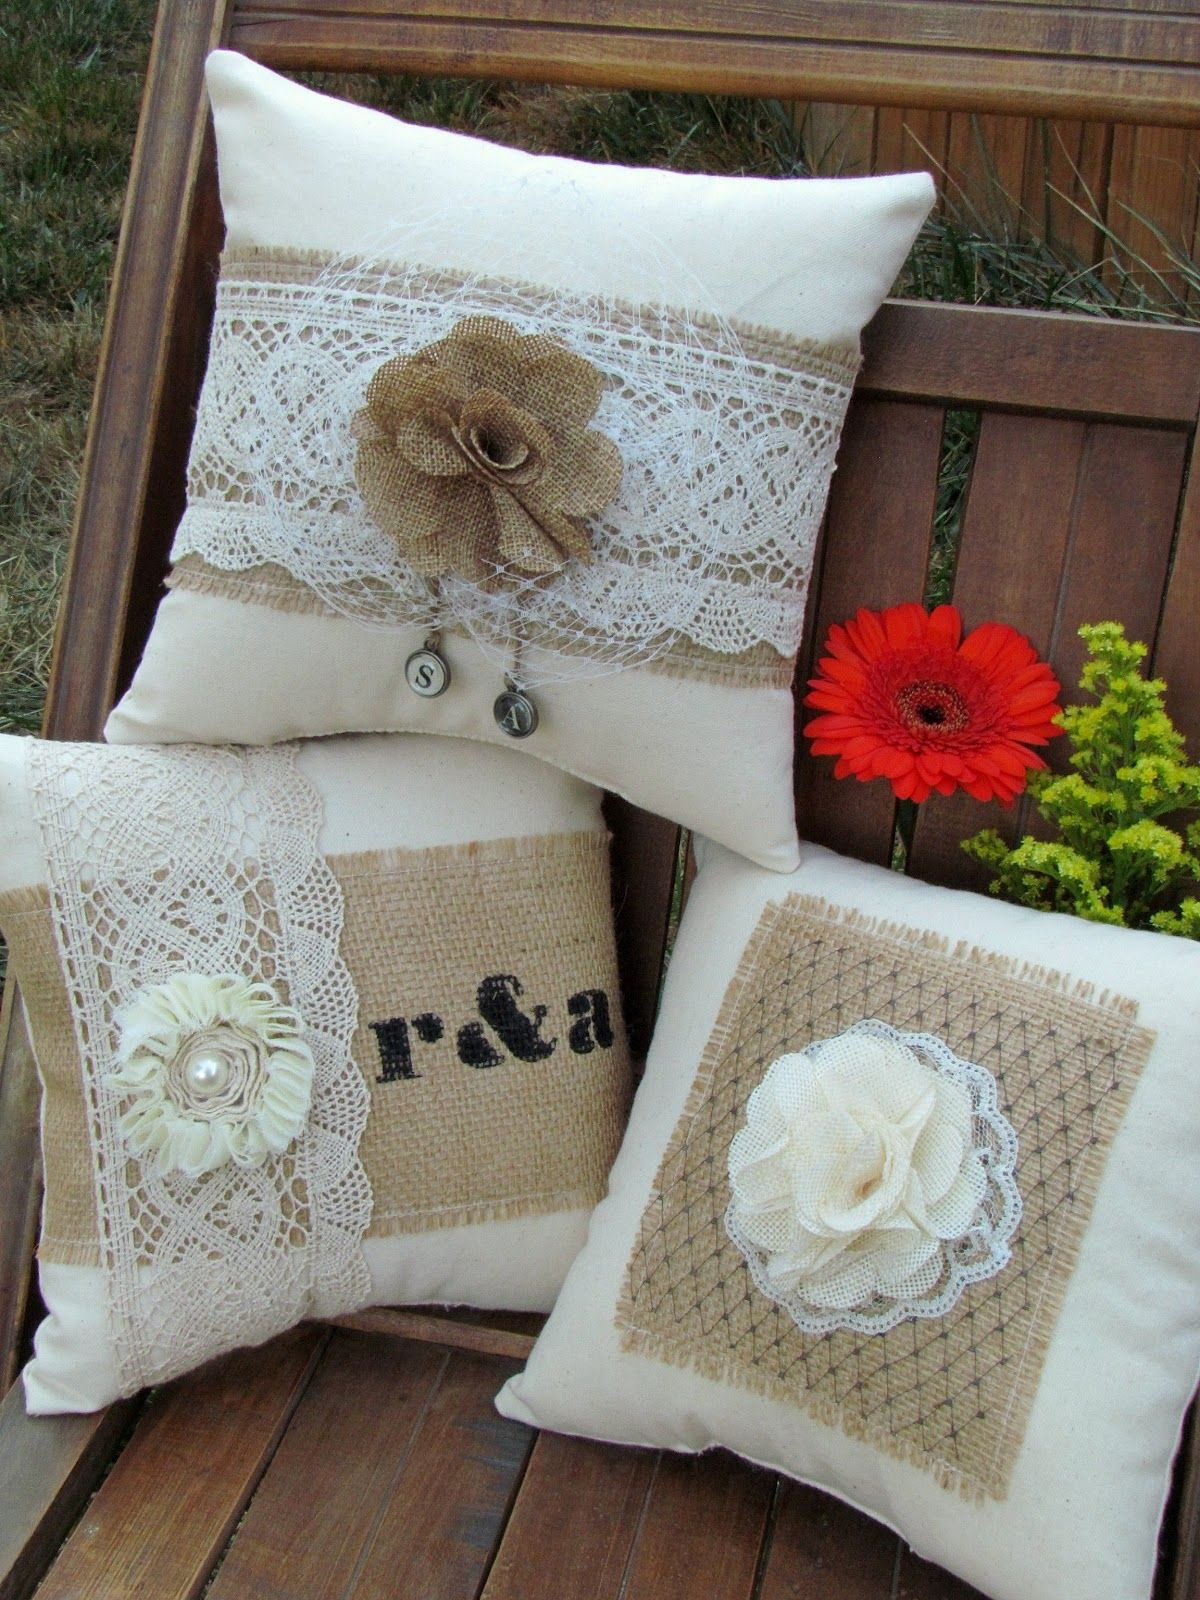 rustic living shop update new ring bearer pillows home pretties pinterest. Black Bedroom Furniture Sets. Home Design Ideas